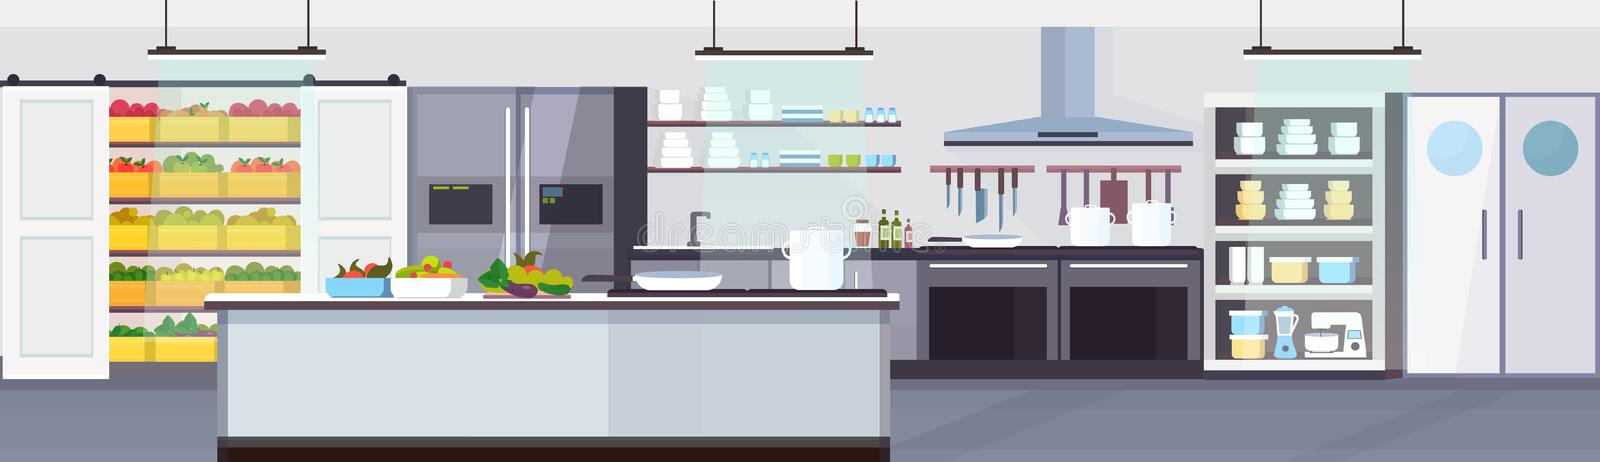 Modern commercial restaurant kitchen interior with healthy food fruits and vegetables cooking and culinary concept empty stock illustration